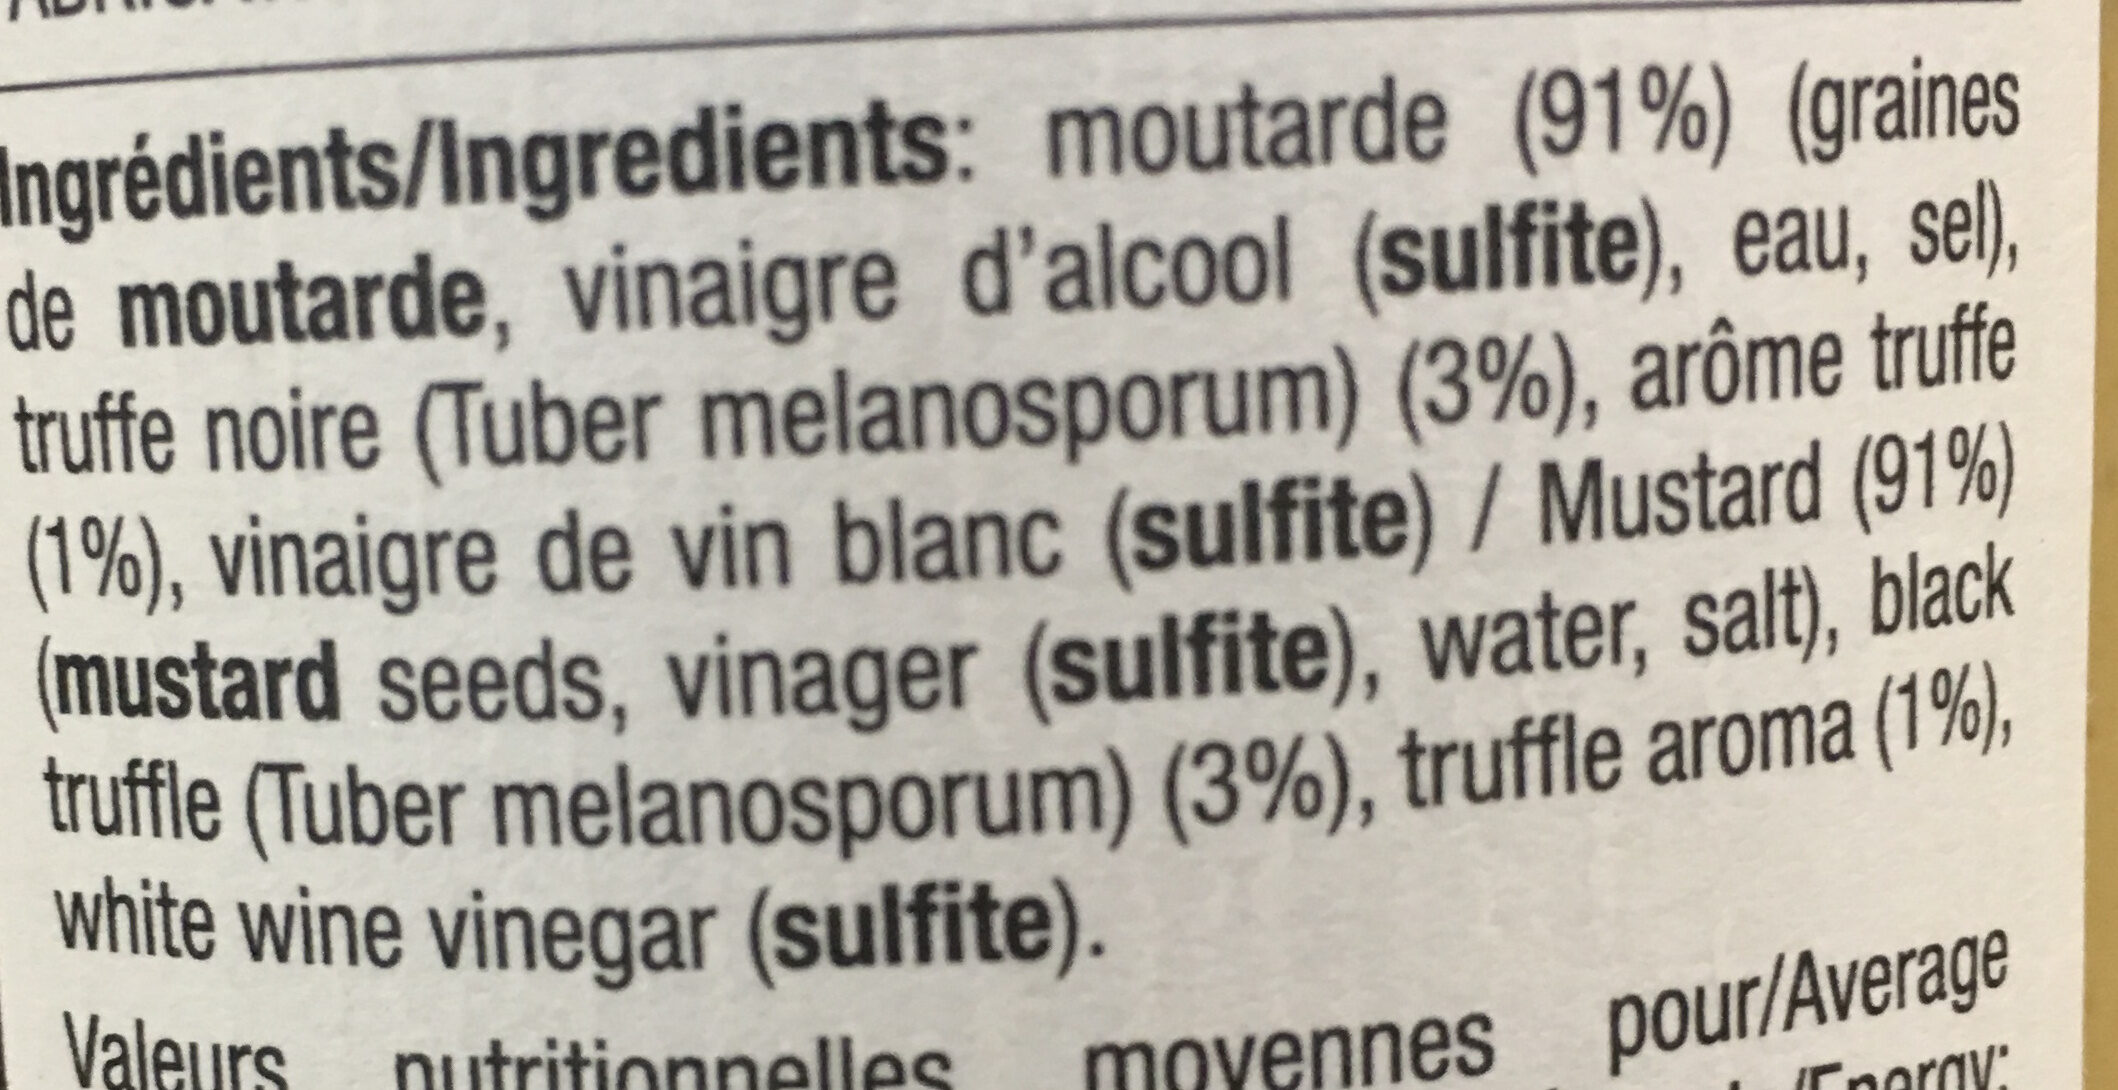 Moutarde et truffe noire - Ingredients